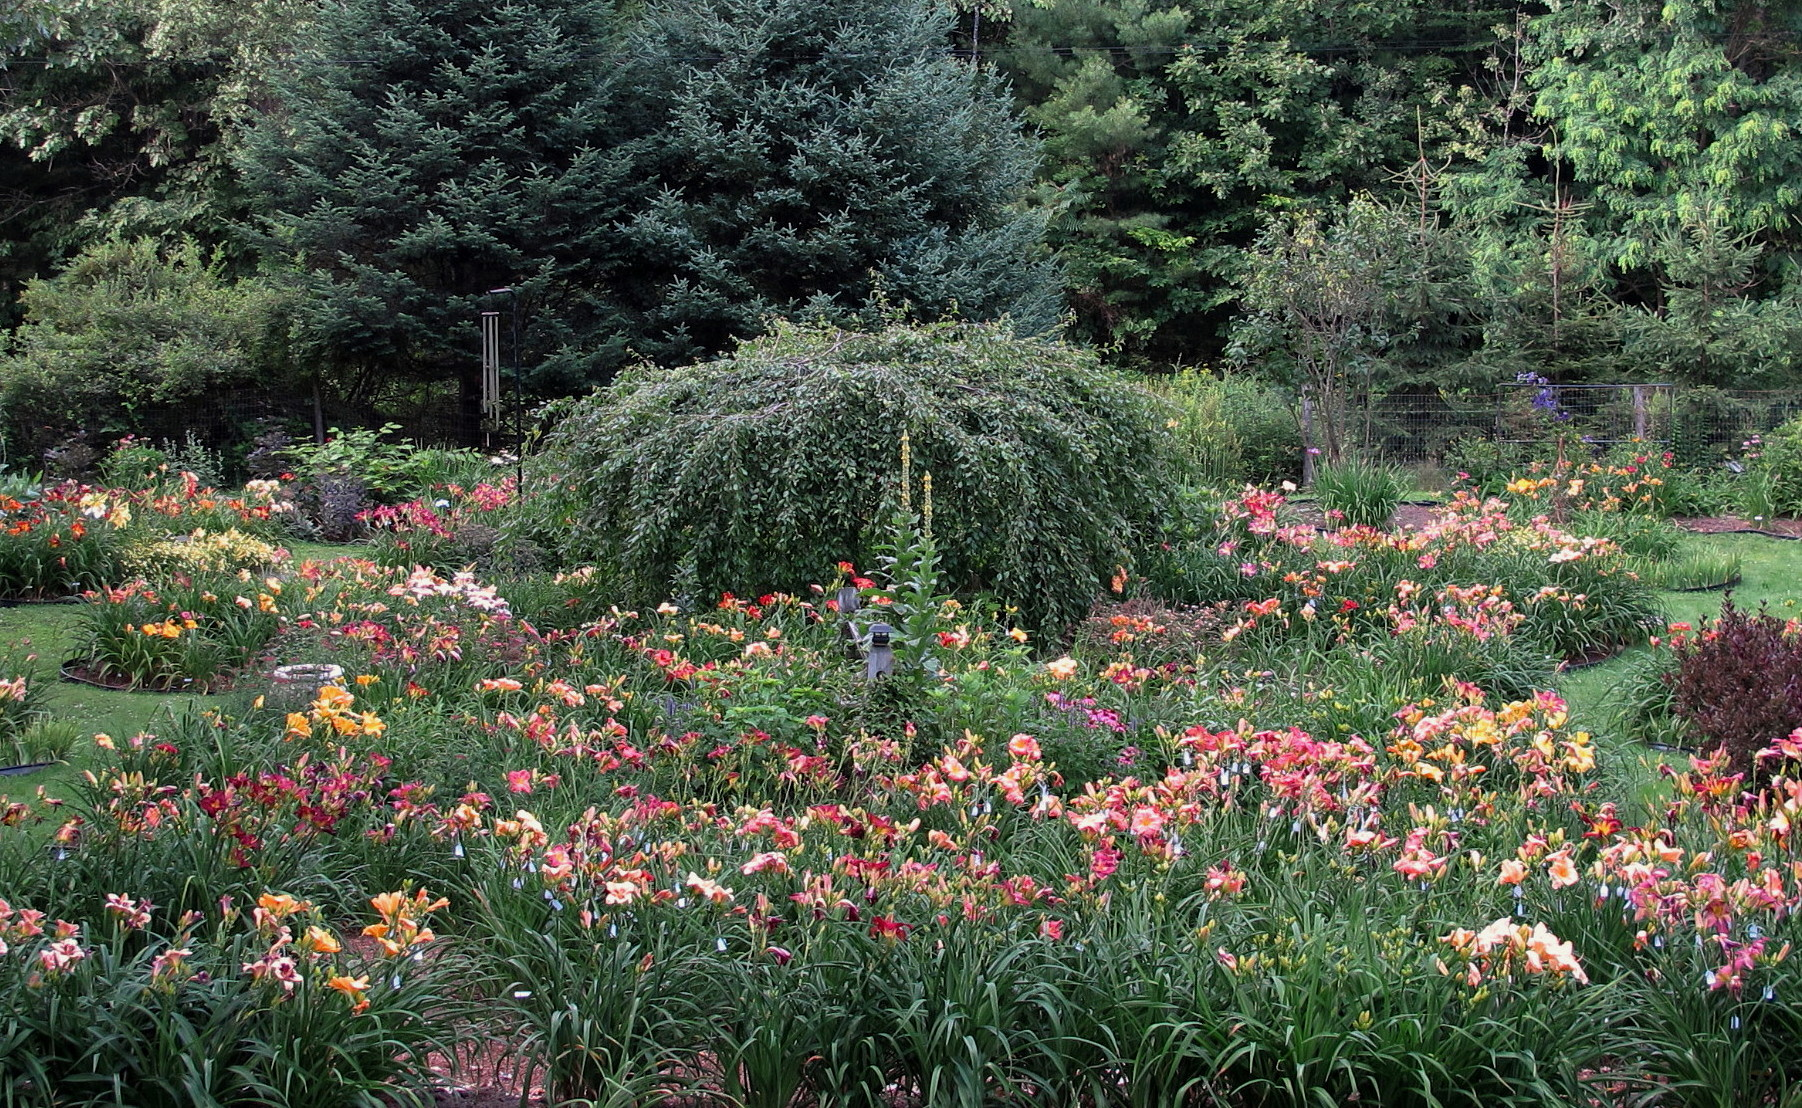 ... Connecticut River Valley, Holdnu0027 Heaven Is An AHS Display Garden  Designed To Showcase A Growing Daylily Collection With Mixed Beds Including  Perennials ...